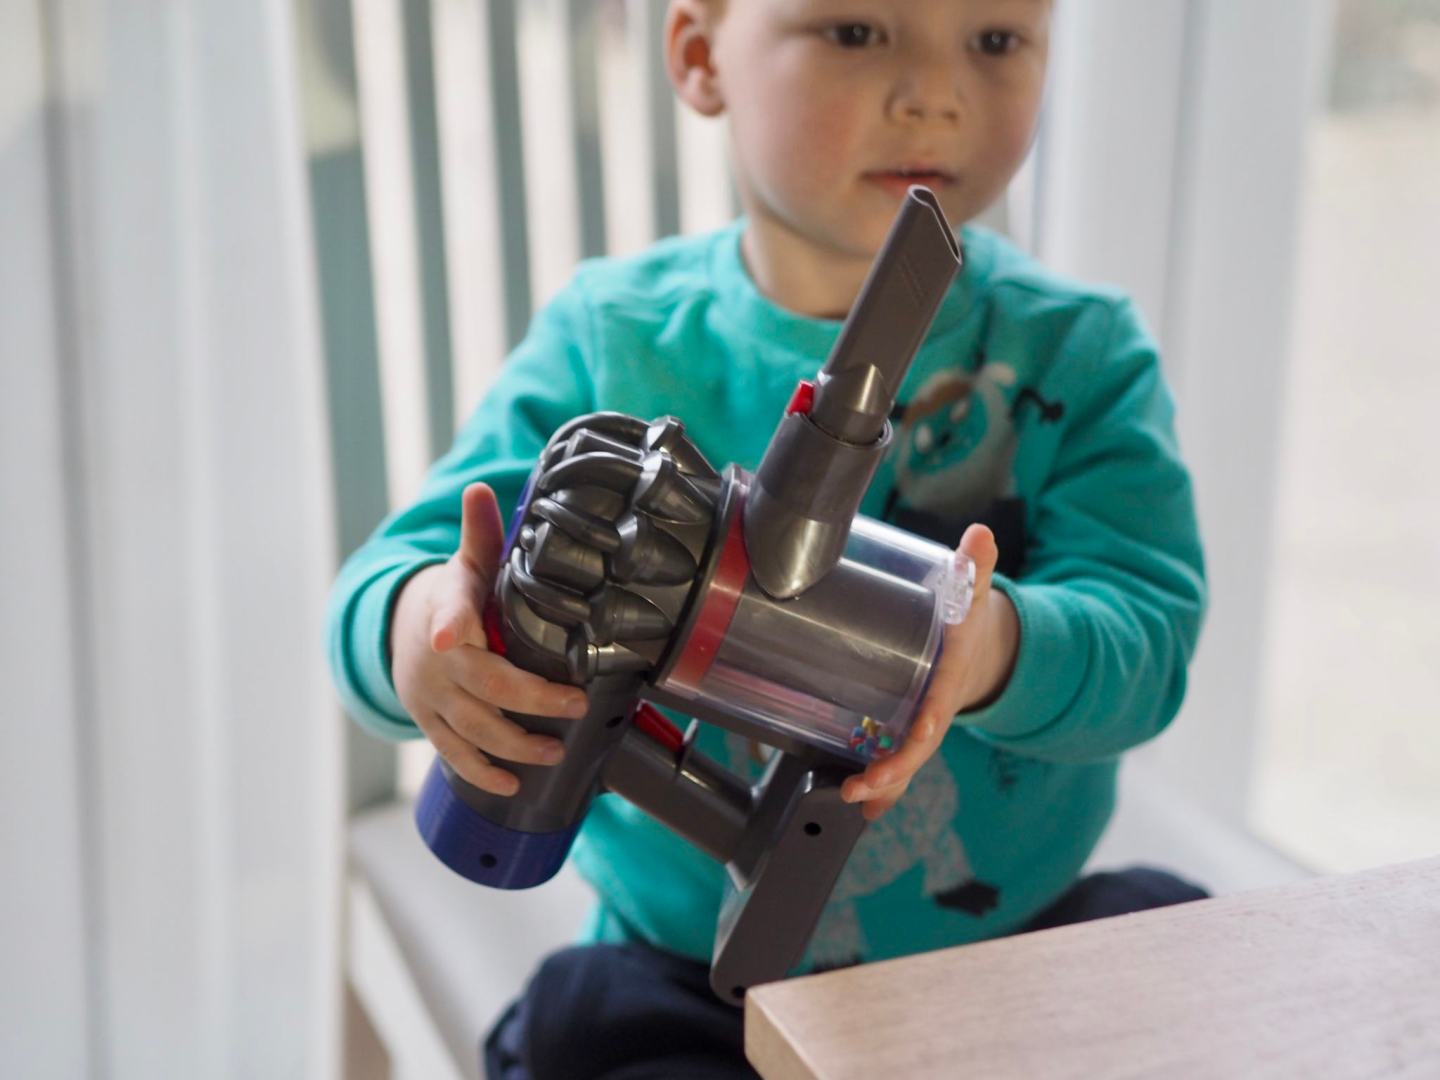 Casdon Toy Dyson Cord-free Vacuum Cleaner Review